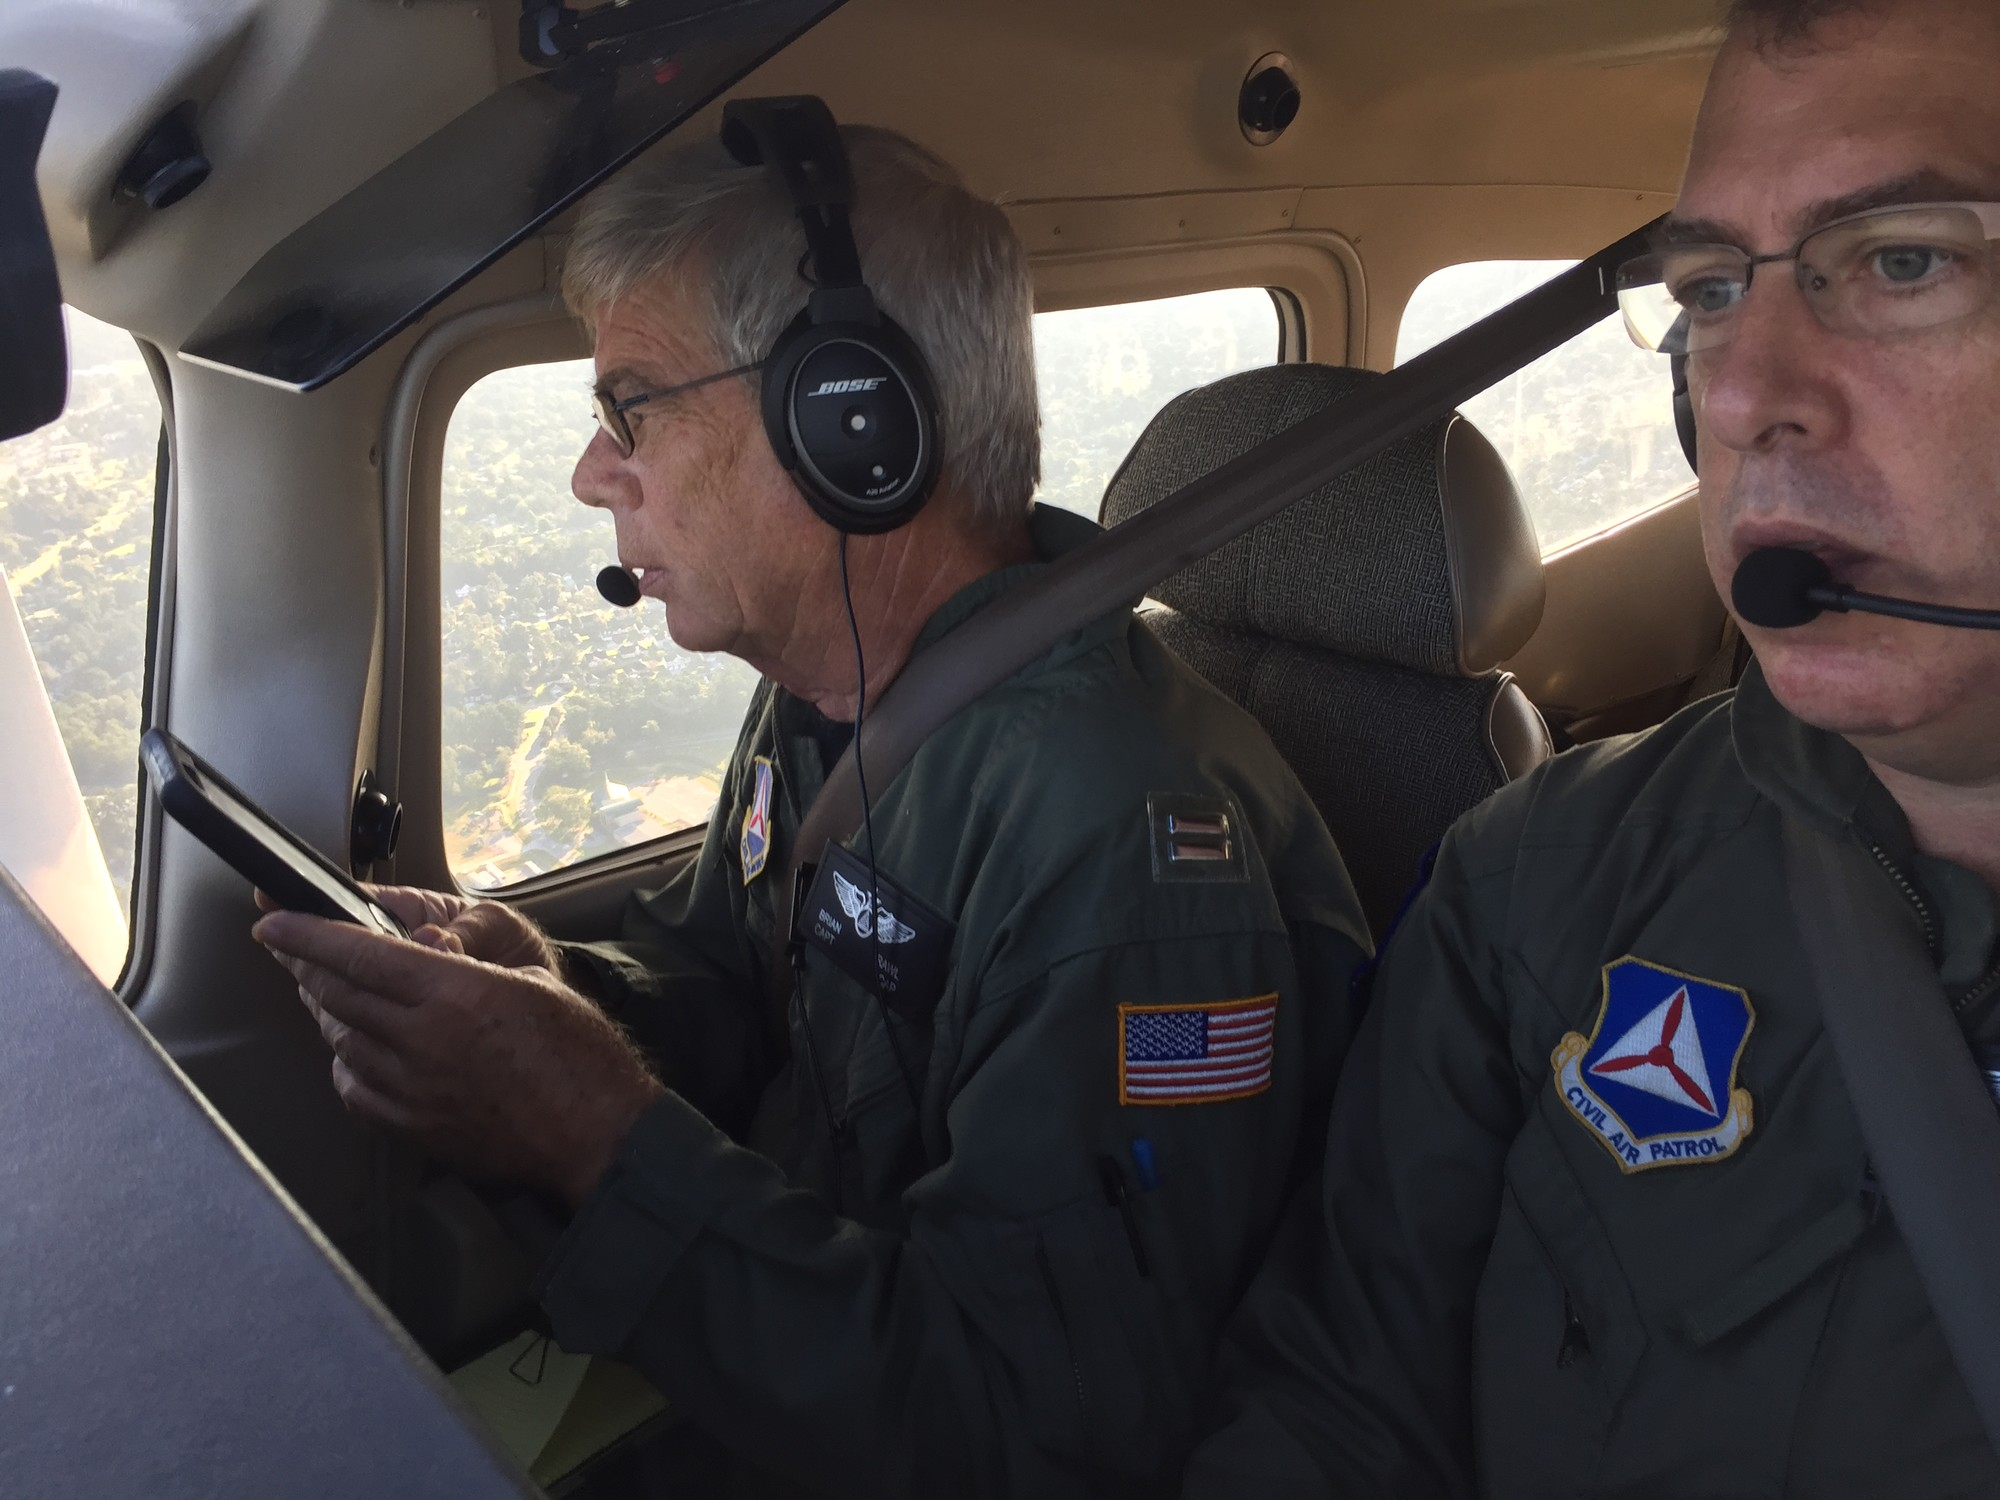 Lt. Col. Brett Grooms and Capt. Brian Rawl perform route evacuation flights over I-26 in South Carolina on Tuesday, Sept. 11.